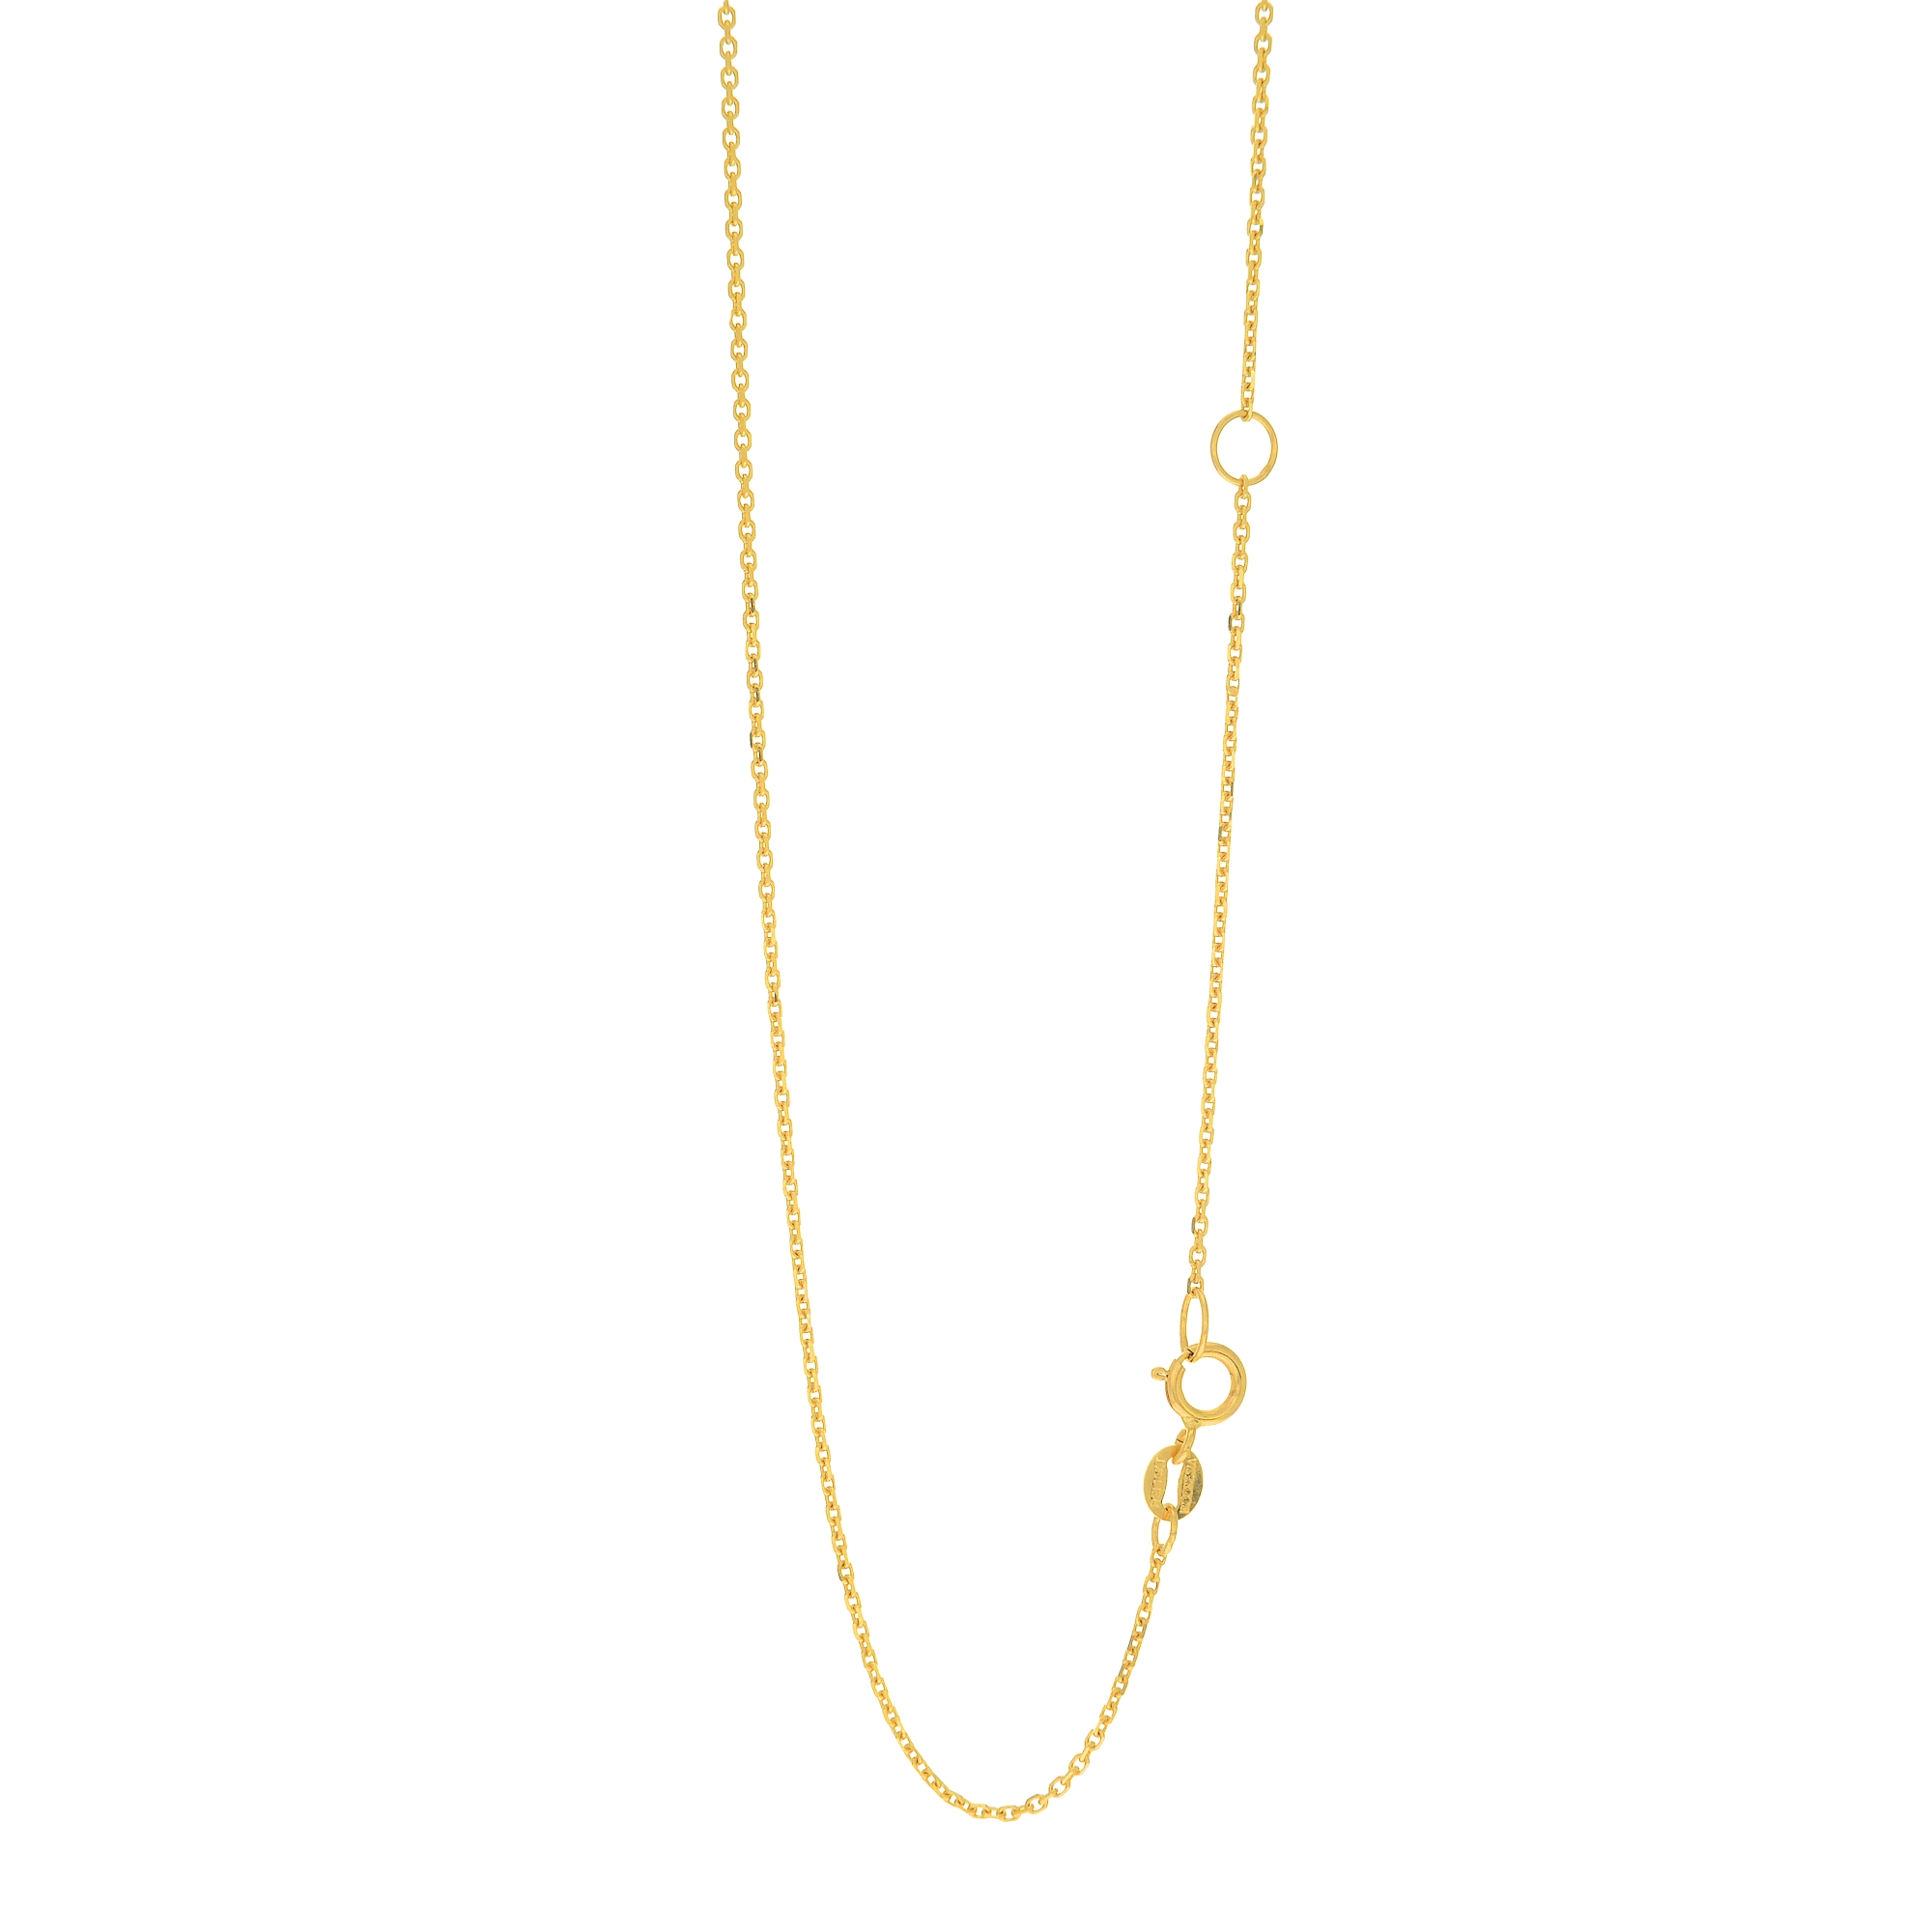 LUXURMAN Solid 14k Gold Cable Chain For Women Extendable 1.1mm Wide Yellow Image